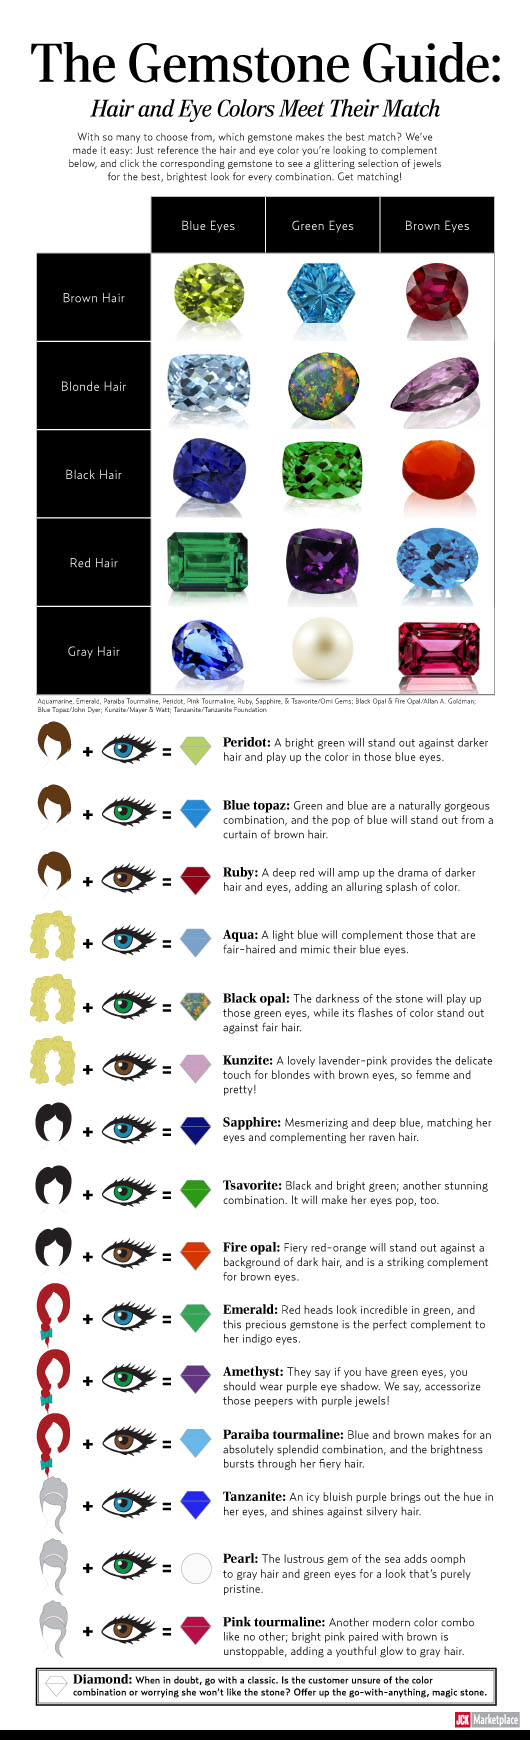 The Gemstone Guide